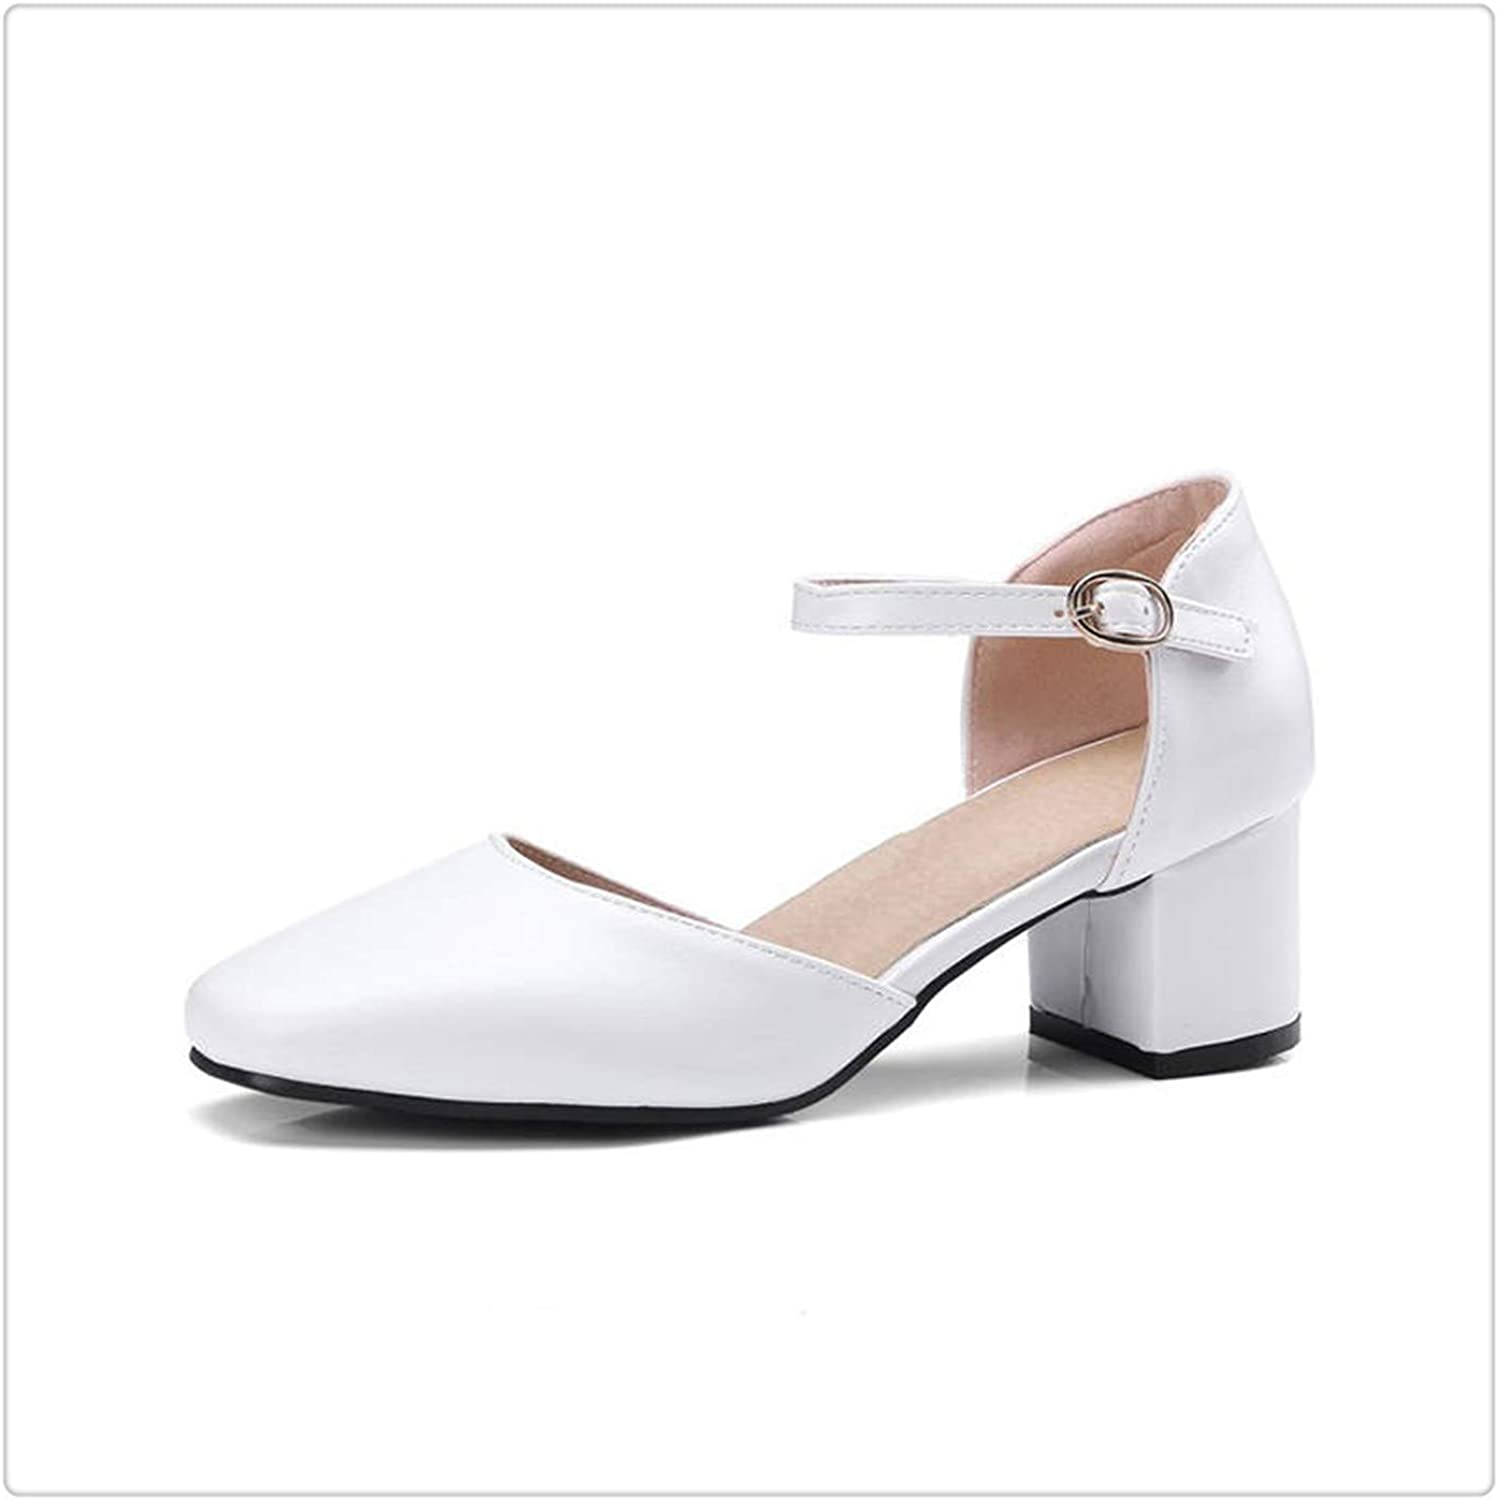 Yyixianma New Plus Size 33-48 Ankle-Strap Summer shoes Women Sandals Fashion Square Heels Office Lady Sandals Woman White 10